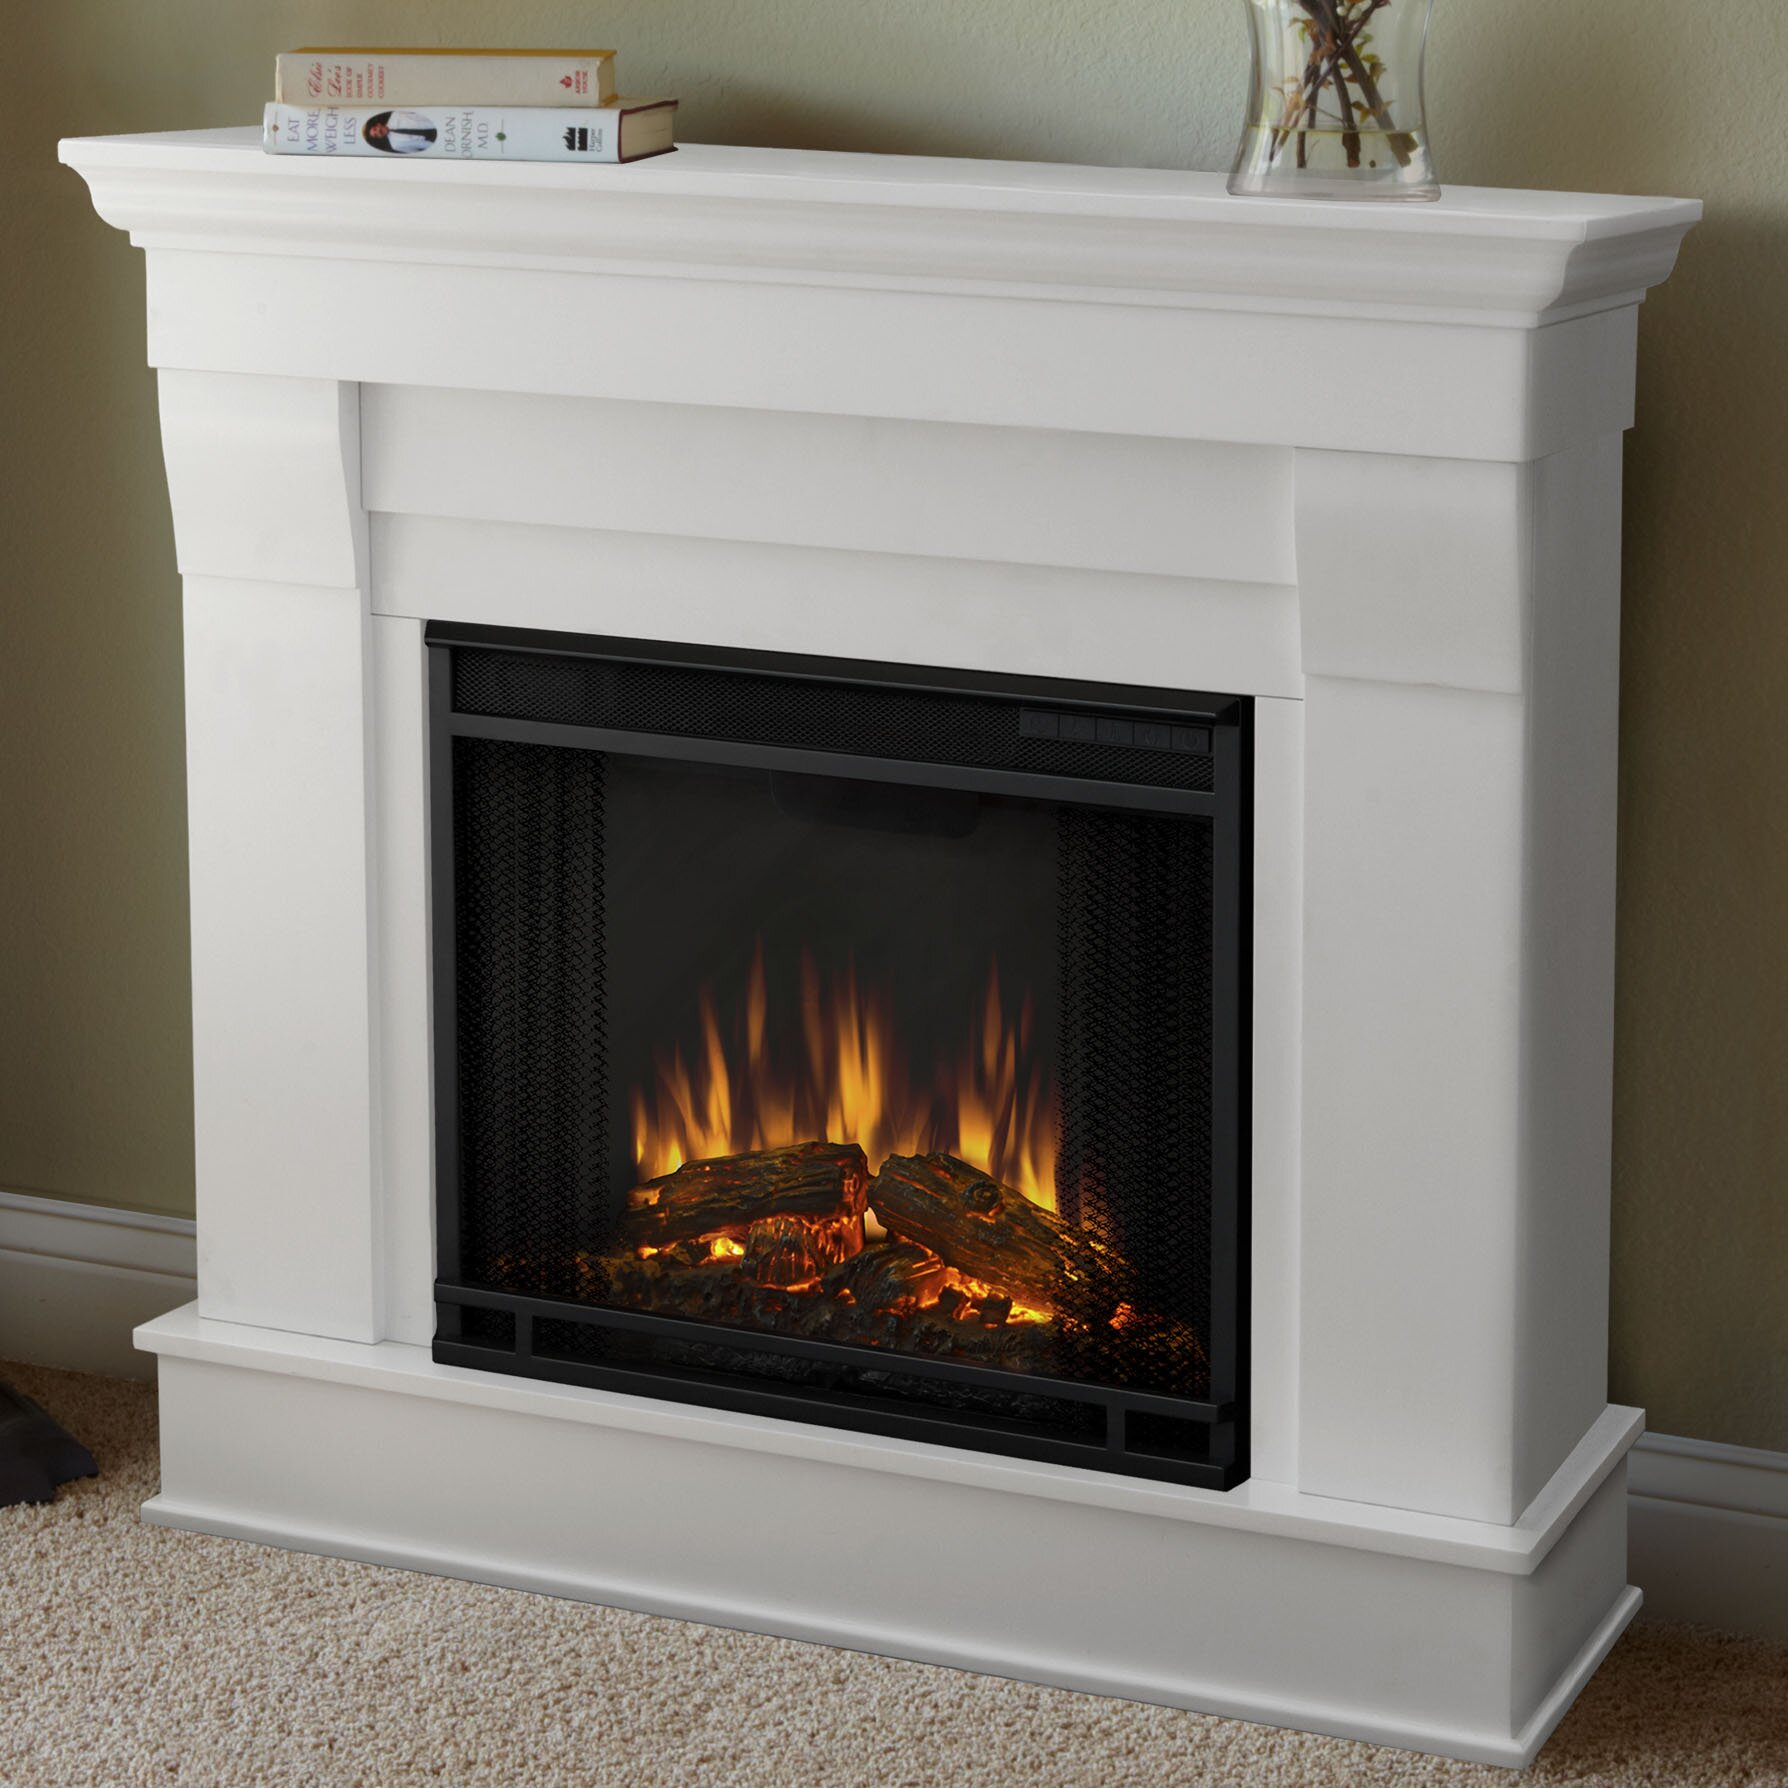 Wayfair fireplace